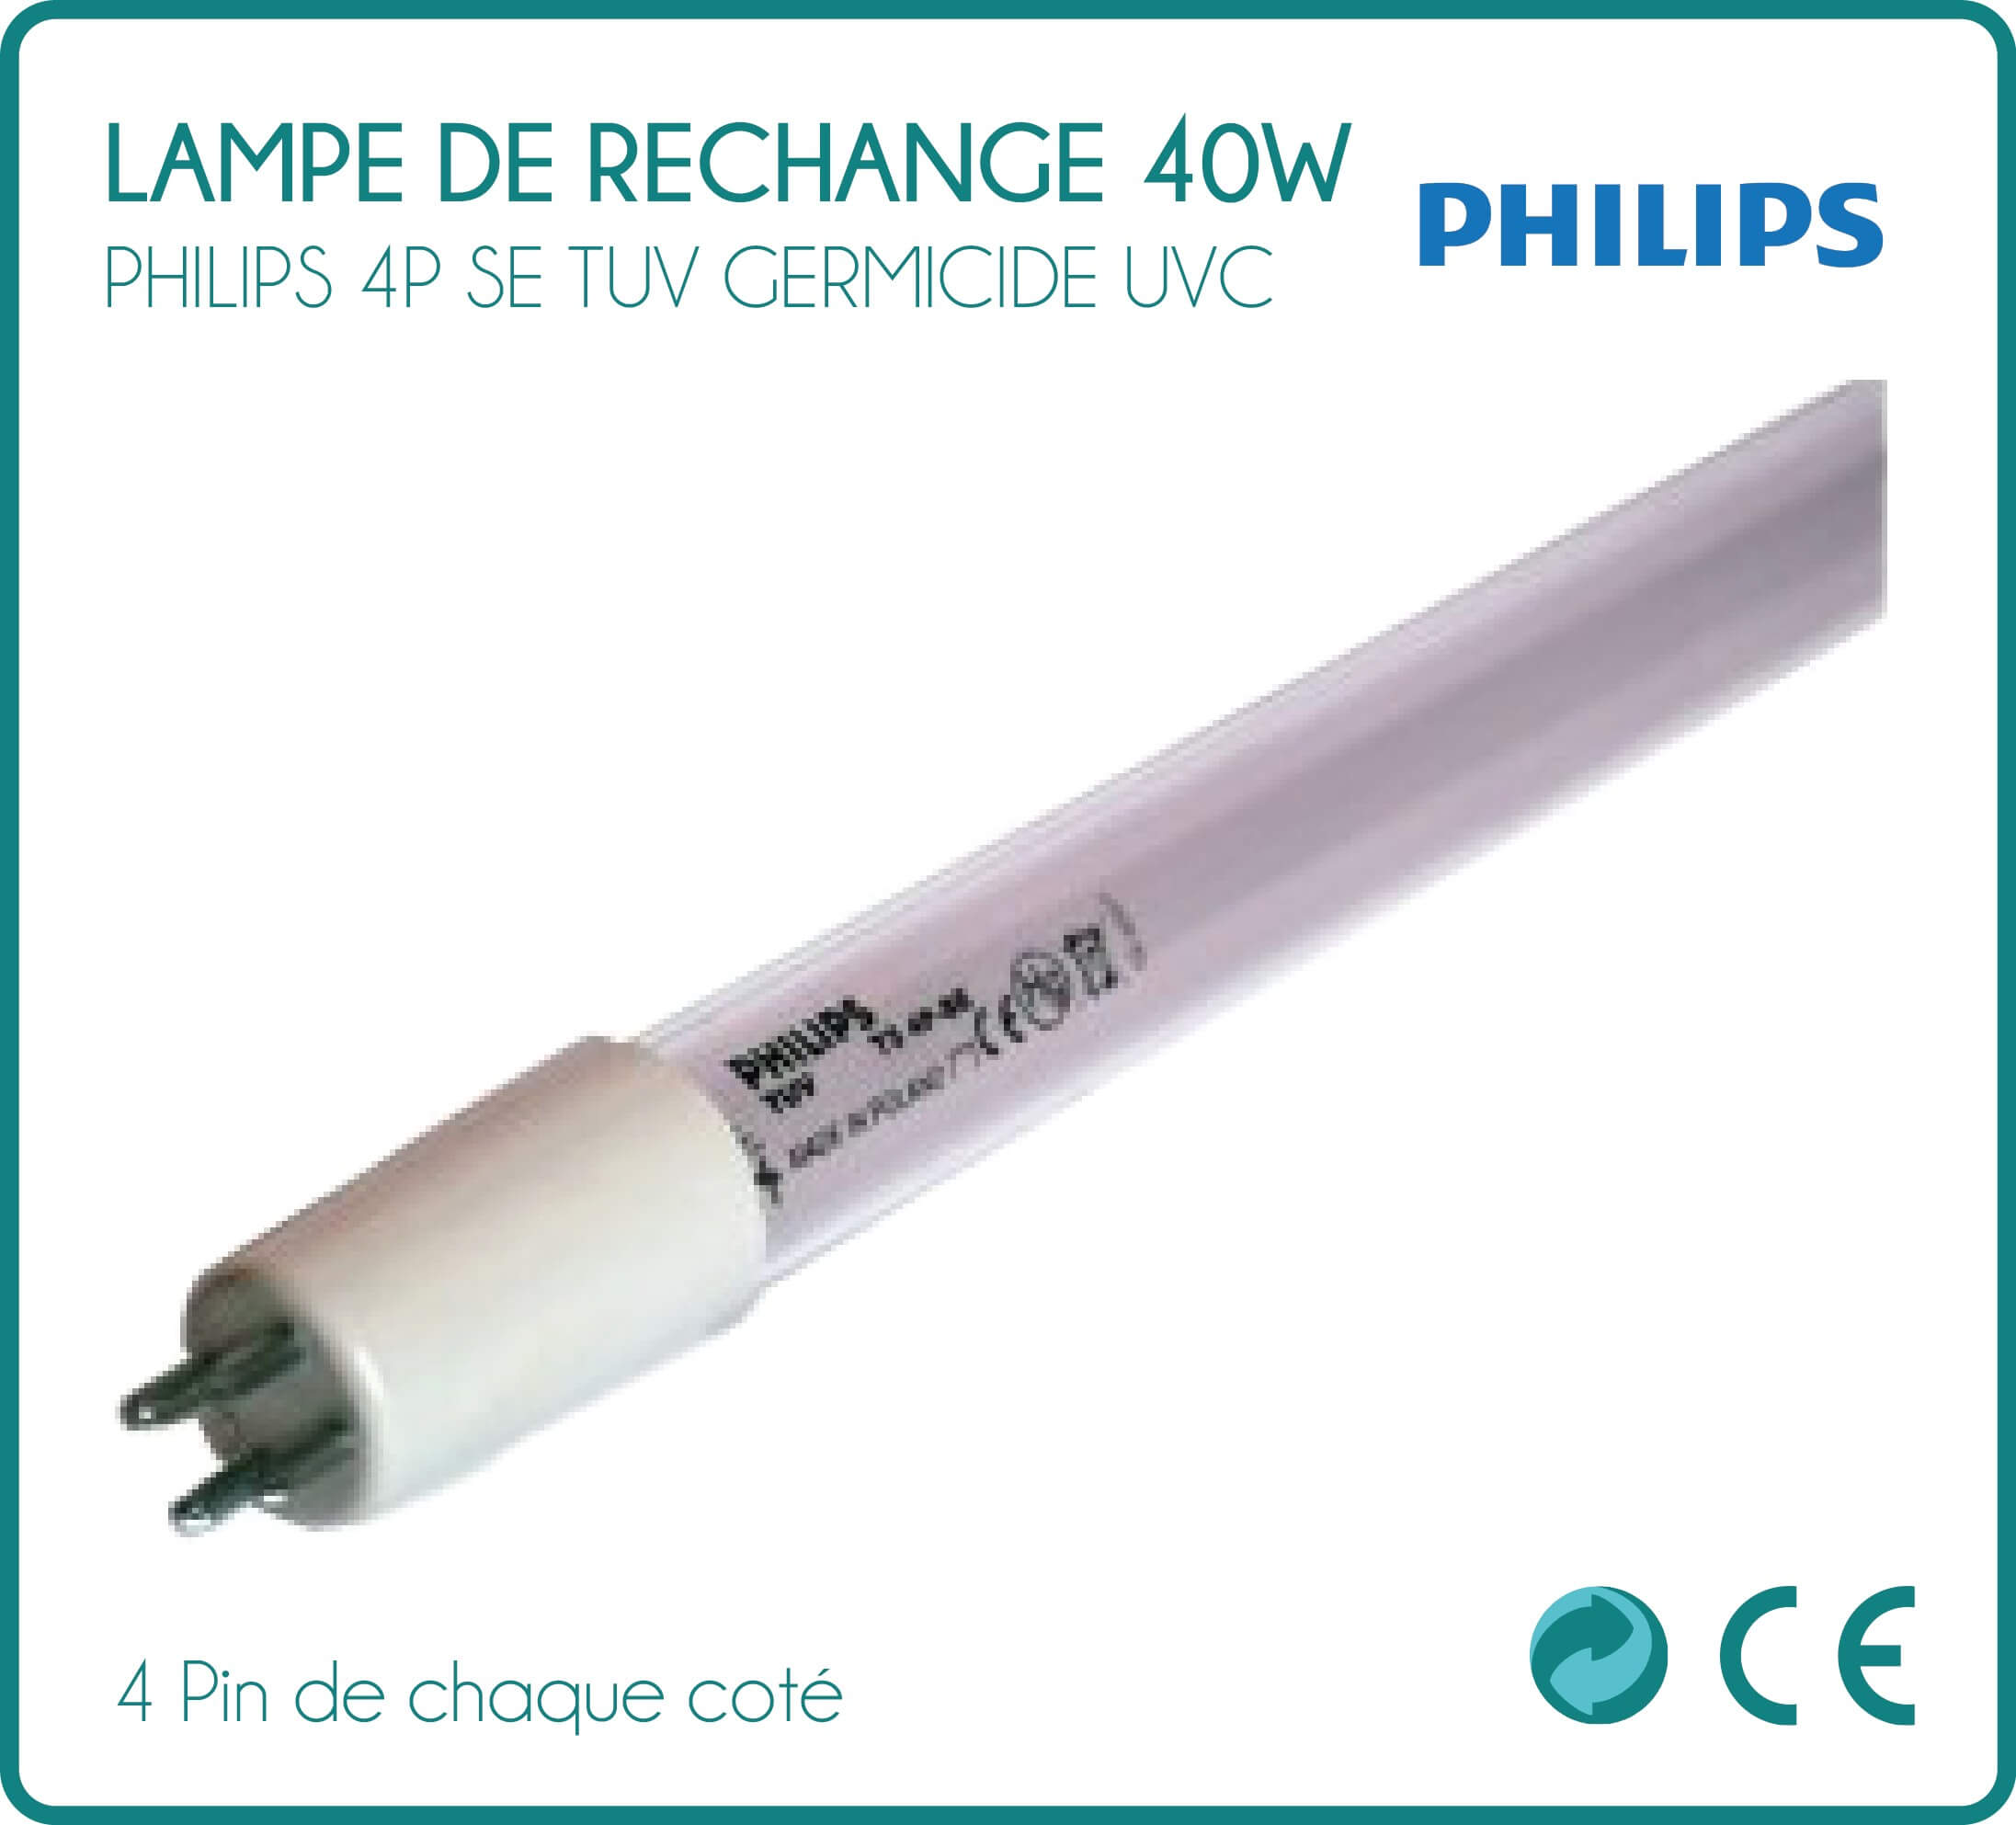 Lampe 40w For Uv Sterilizer Replacement Lamp